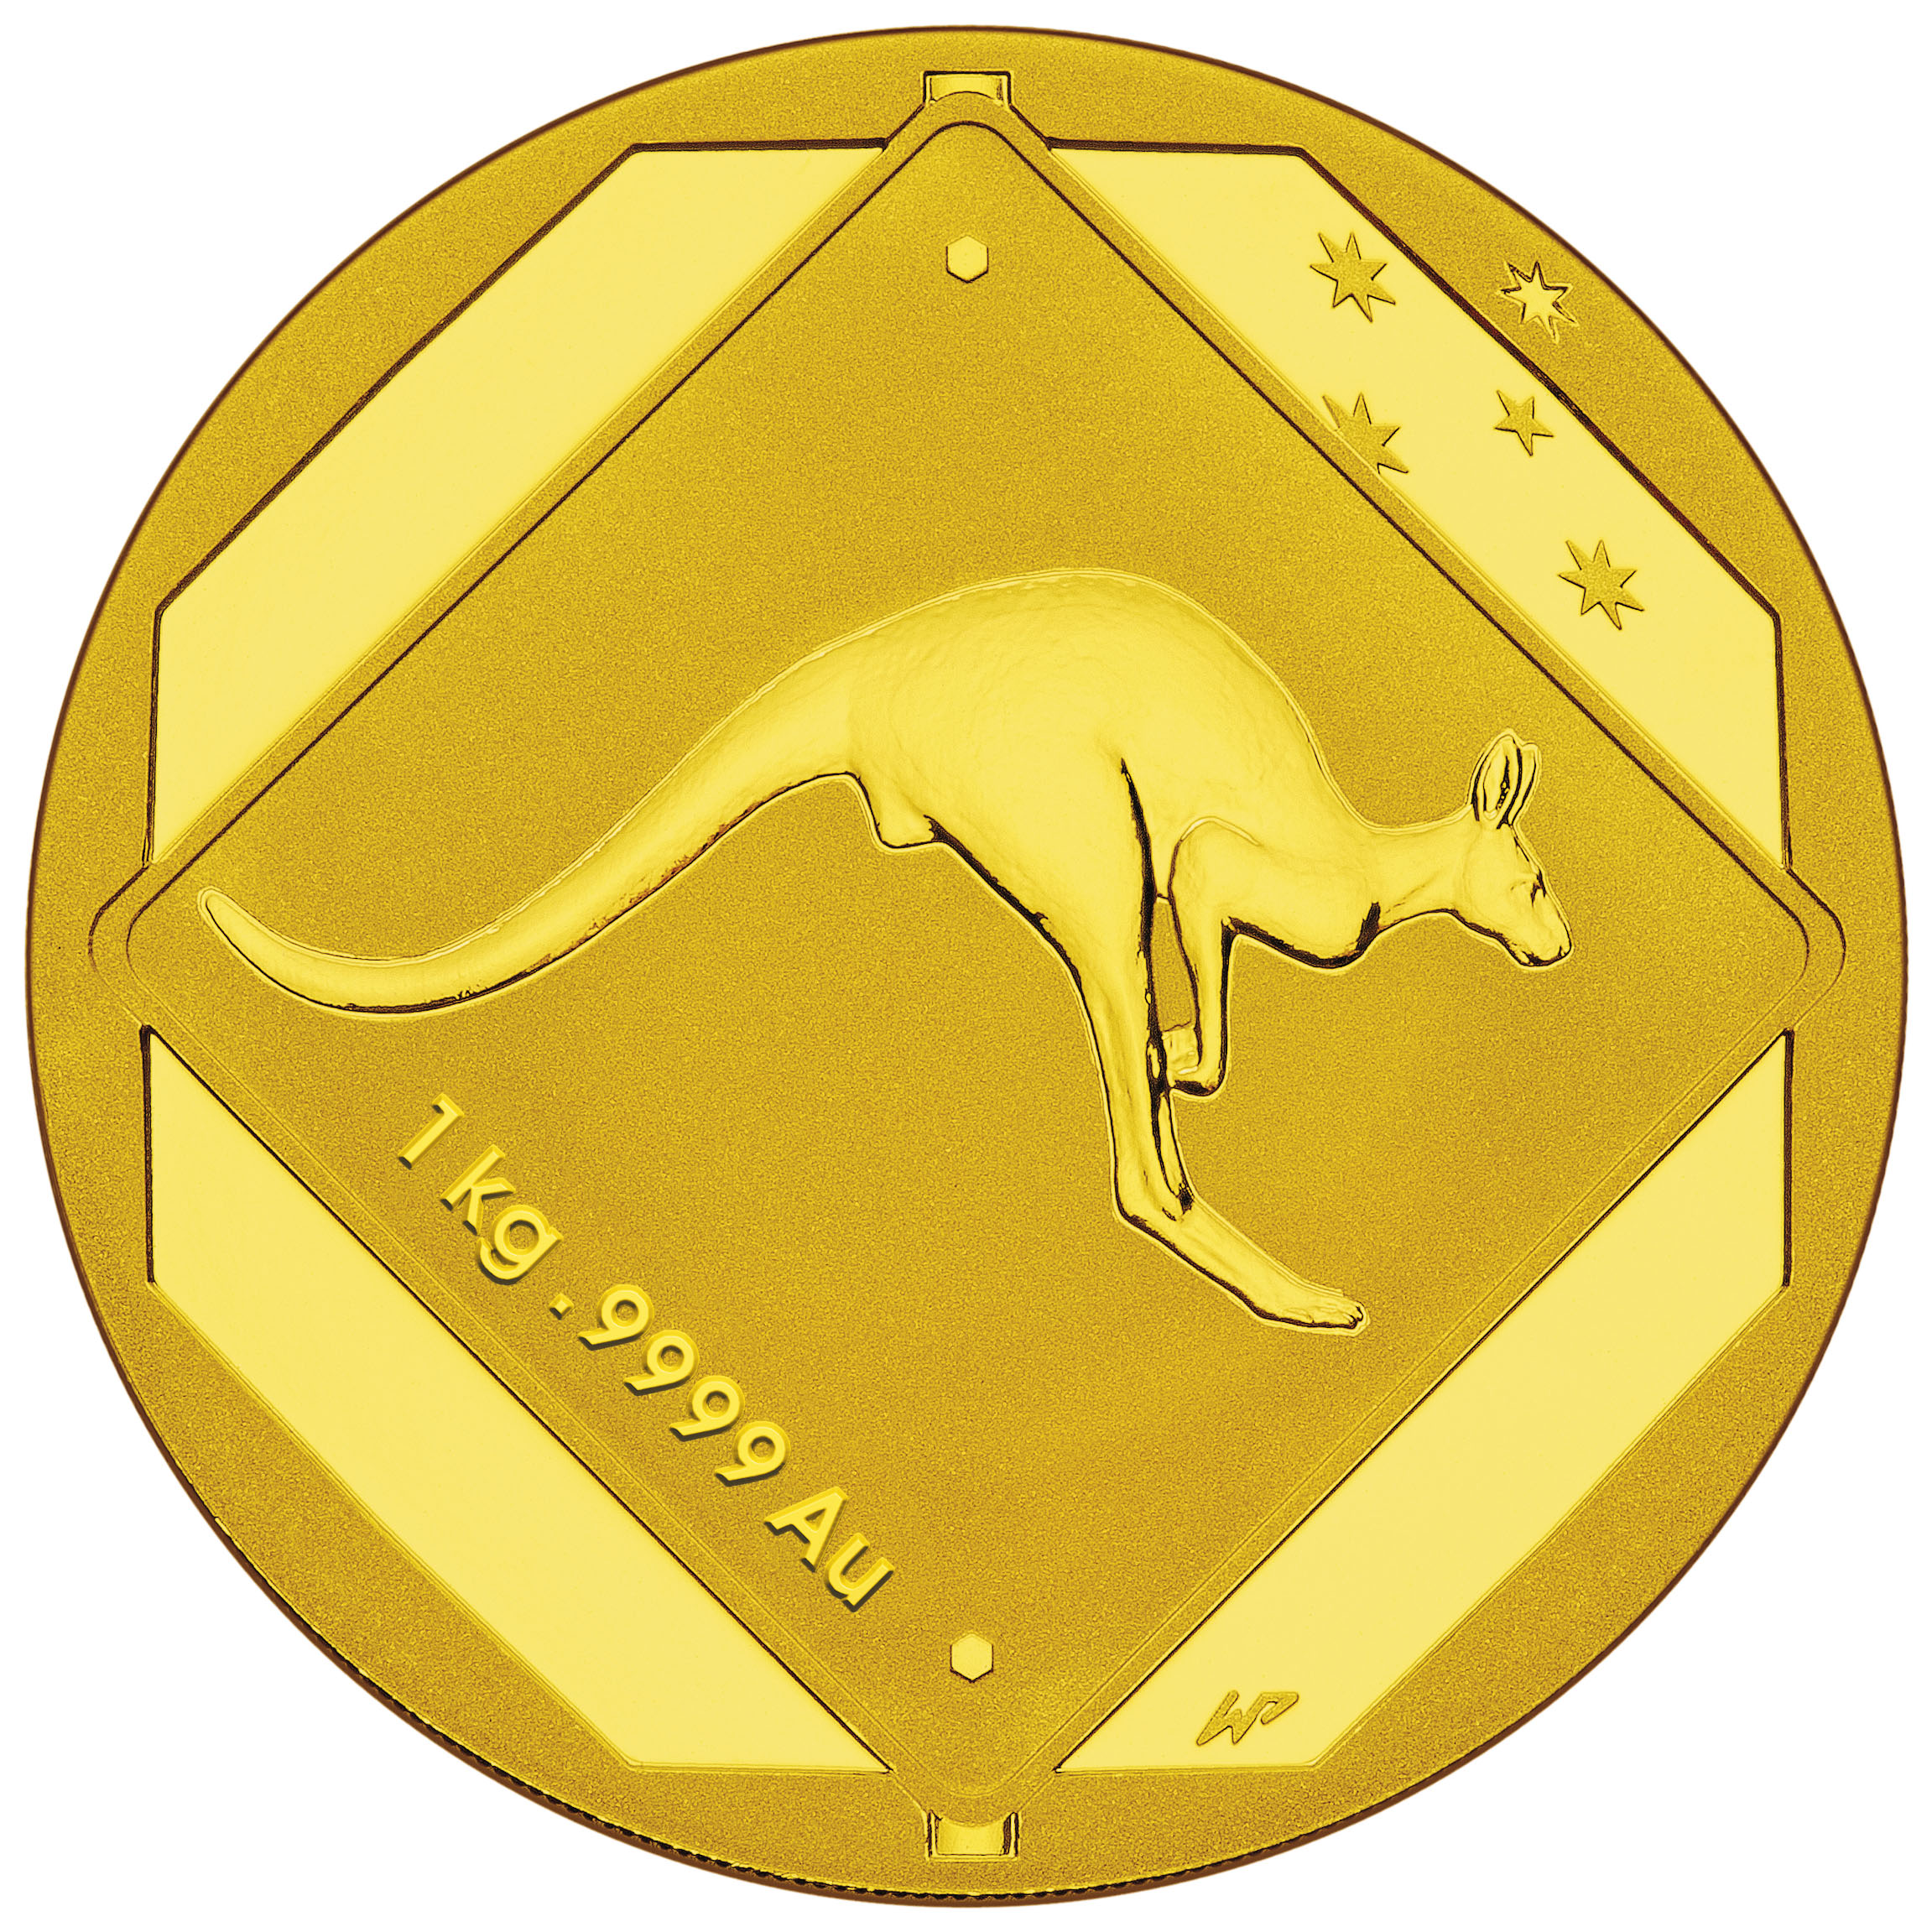 2013 Australia 1 kilo Gold $3000 Kangaroo Road Sign BU